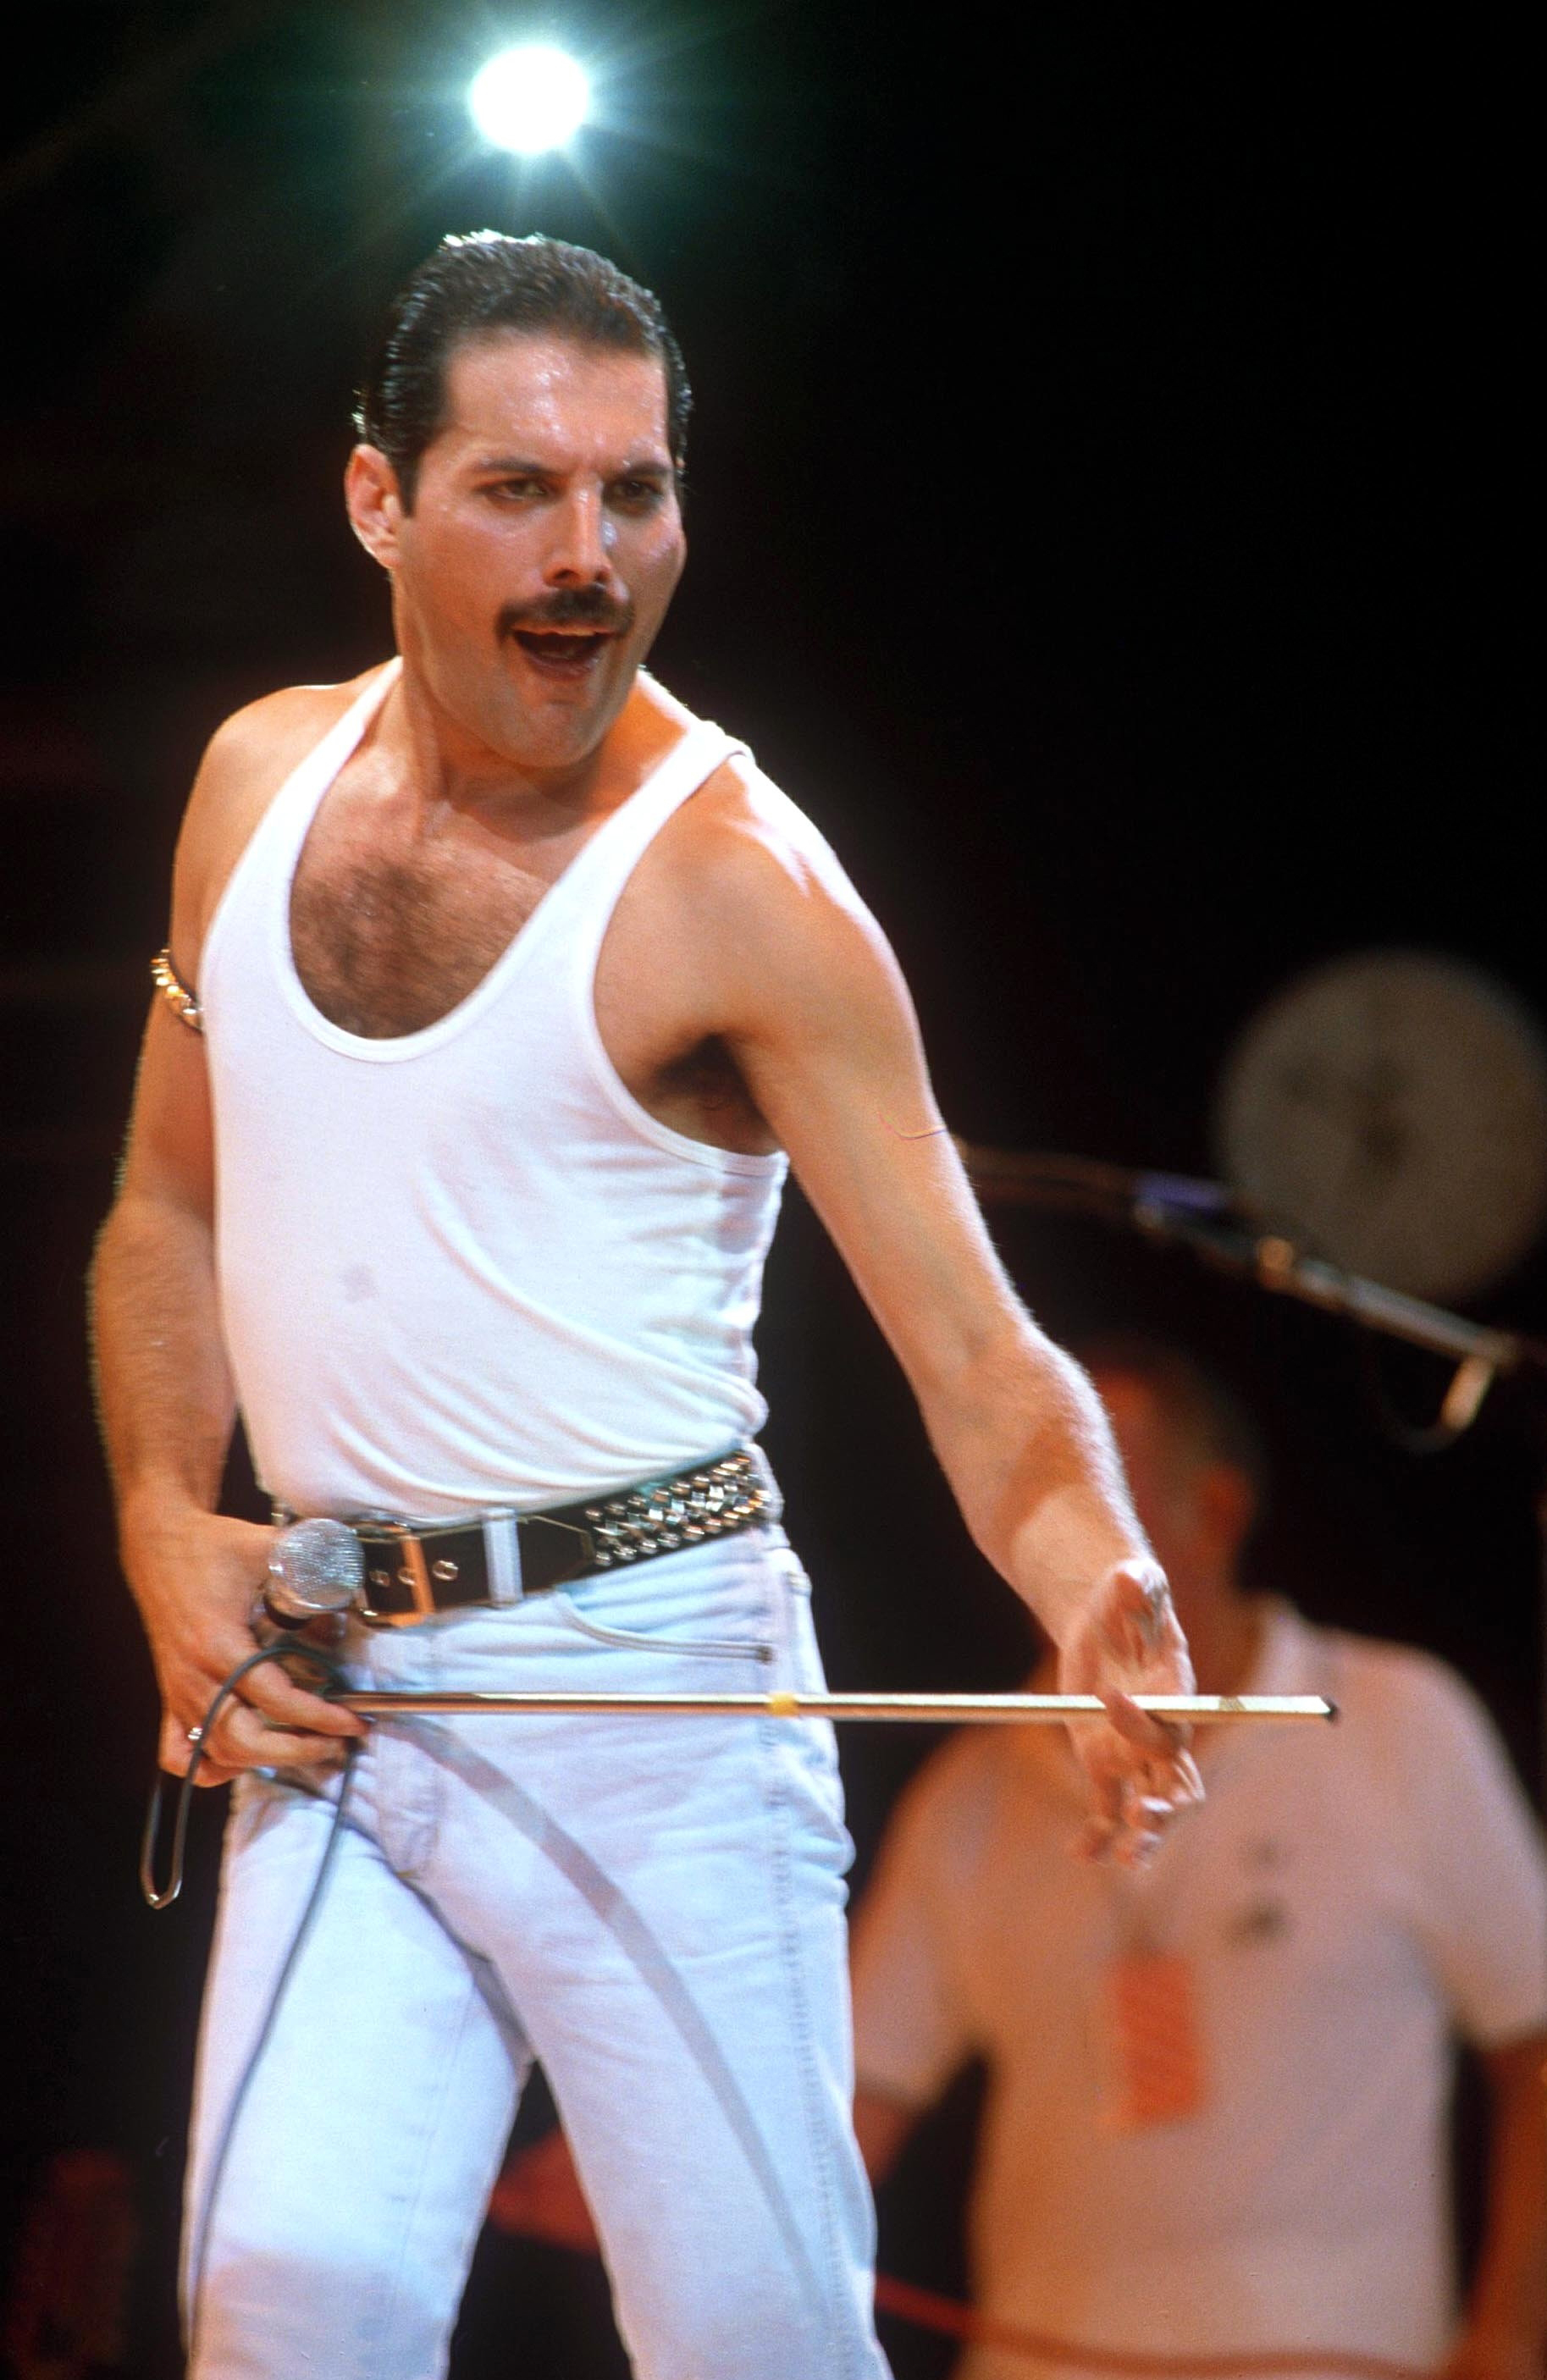 freddie mercury 1991freddie mercury mama, freddie mercury mp3, freddie mercury queen, freddie mercury i want to break free, freddie mercury barcelona, freddie mercury show moscow, freddie mercury скачать, freddie mercury 1991, freddie mercury mother love, freddie mercury magic, freddie mercury barcelona скачать, freddie mercury show must go on, freddie mercury tribute concert, freddie mercury wiki, freddie mercury wikipedia, freddie mercury love kills, freddie mercury the great pretender, freddie mercury time, freddie mercury champions, freddie mercury live